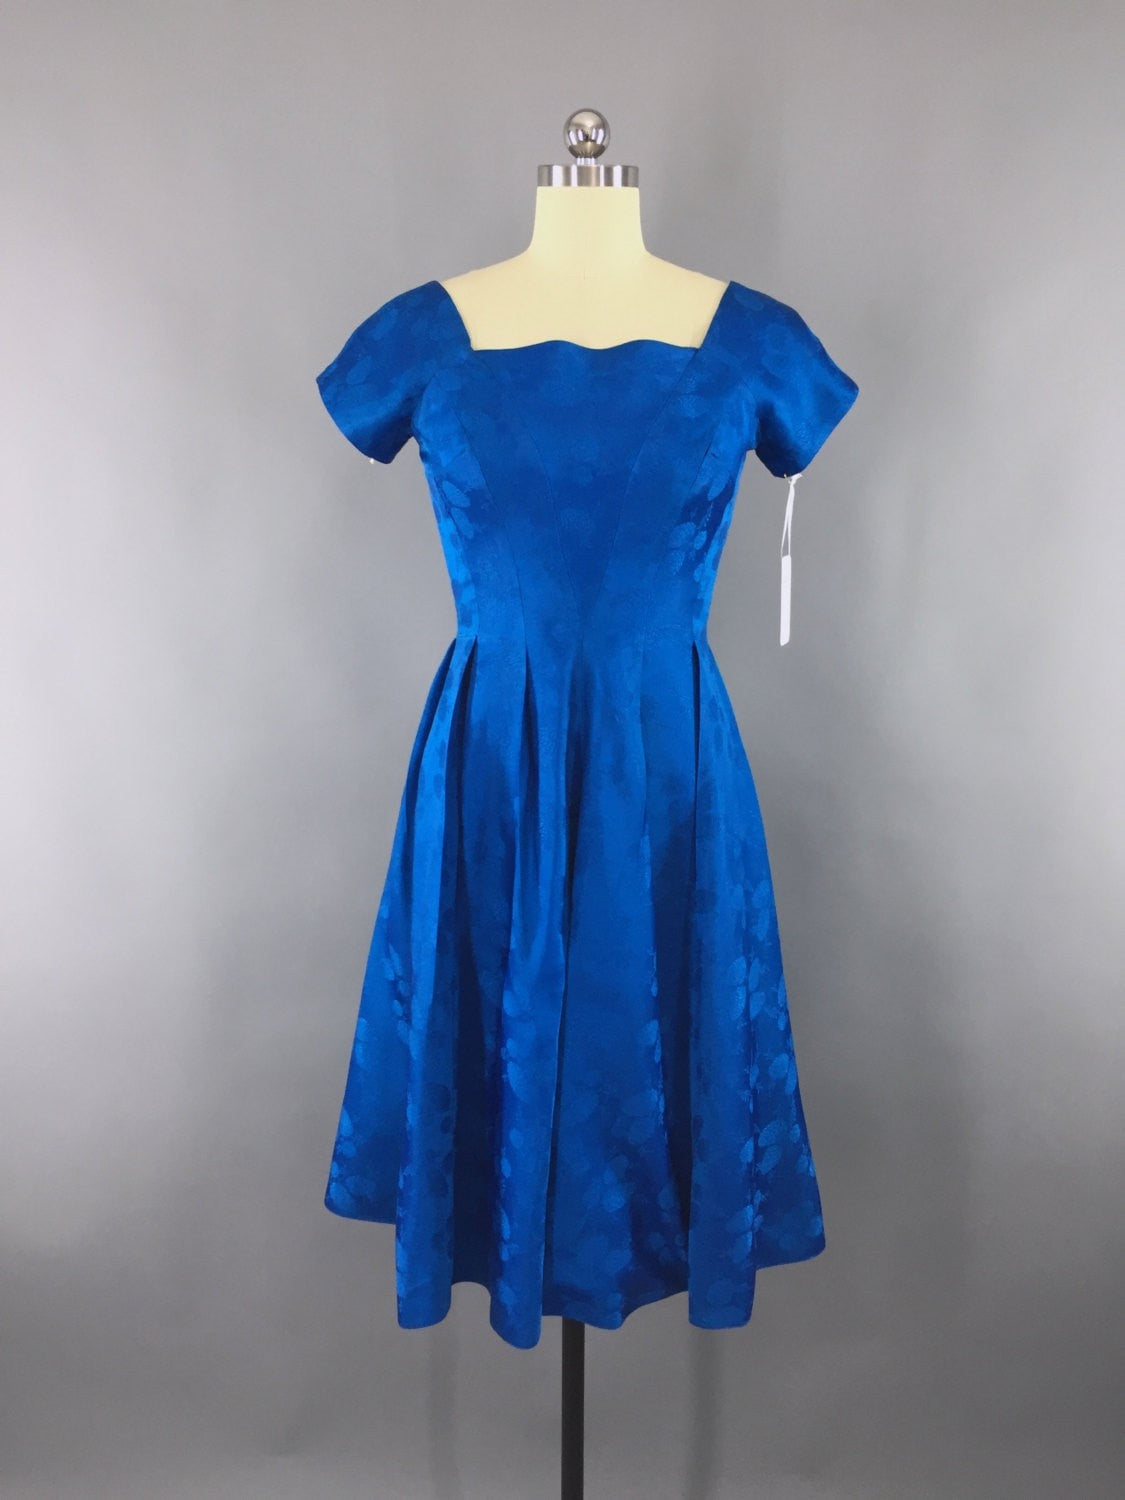 1950s Vintage Electric Blue Satin Damask Party Dress Dress ThisBlueBird